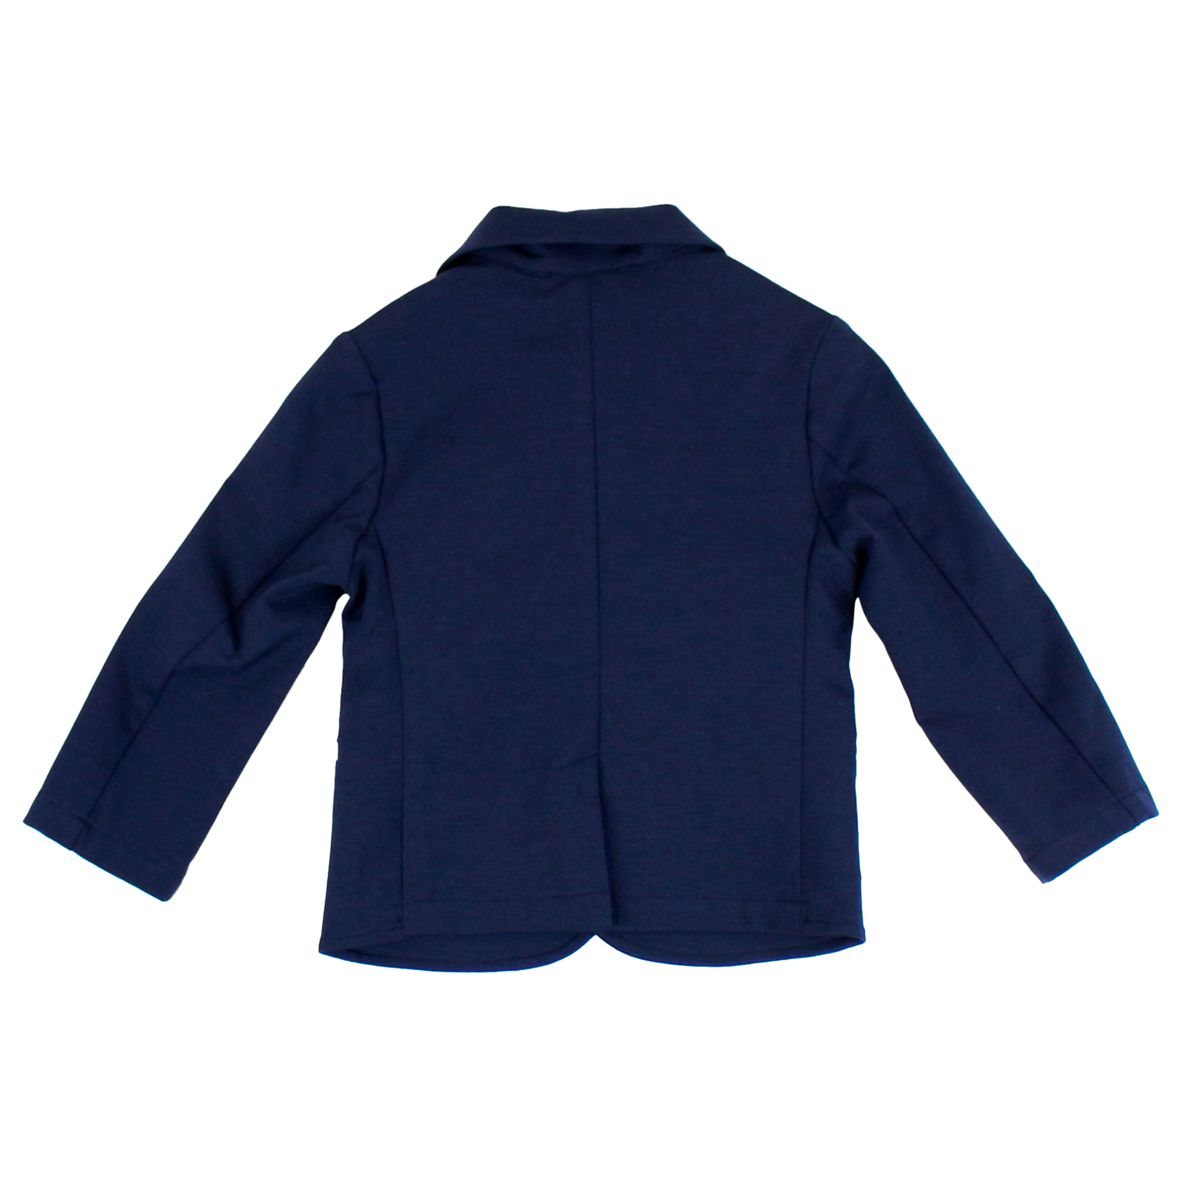 100% cotton baby jacket Blue BIKKEMBERGS